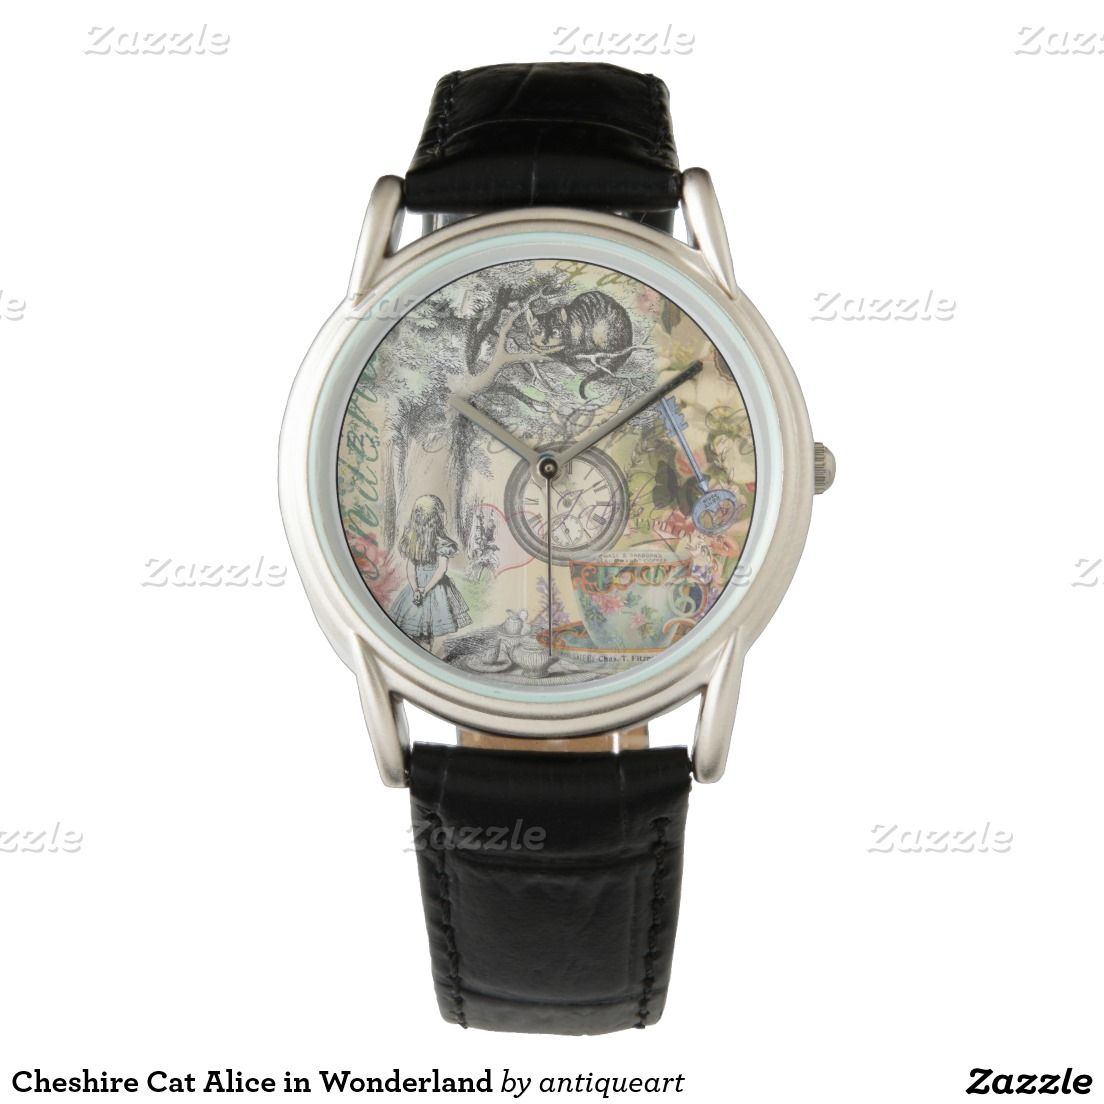 Cheshire Cat Alice in Wonderland Wrist Watches